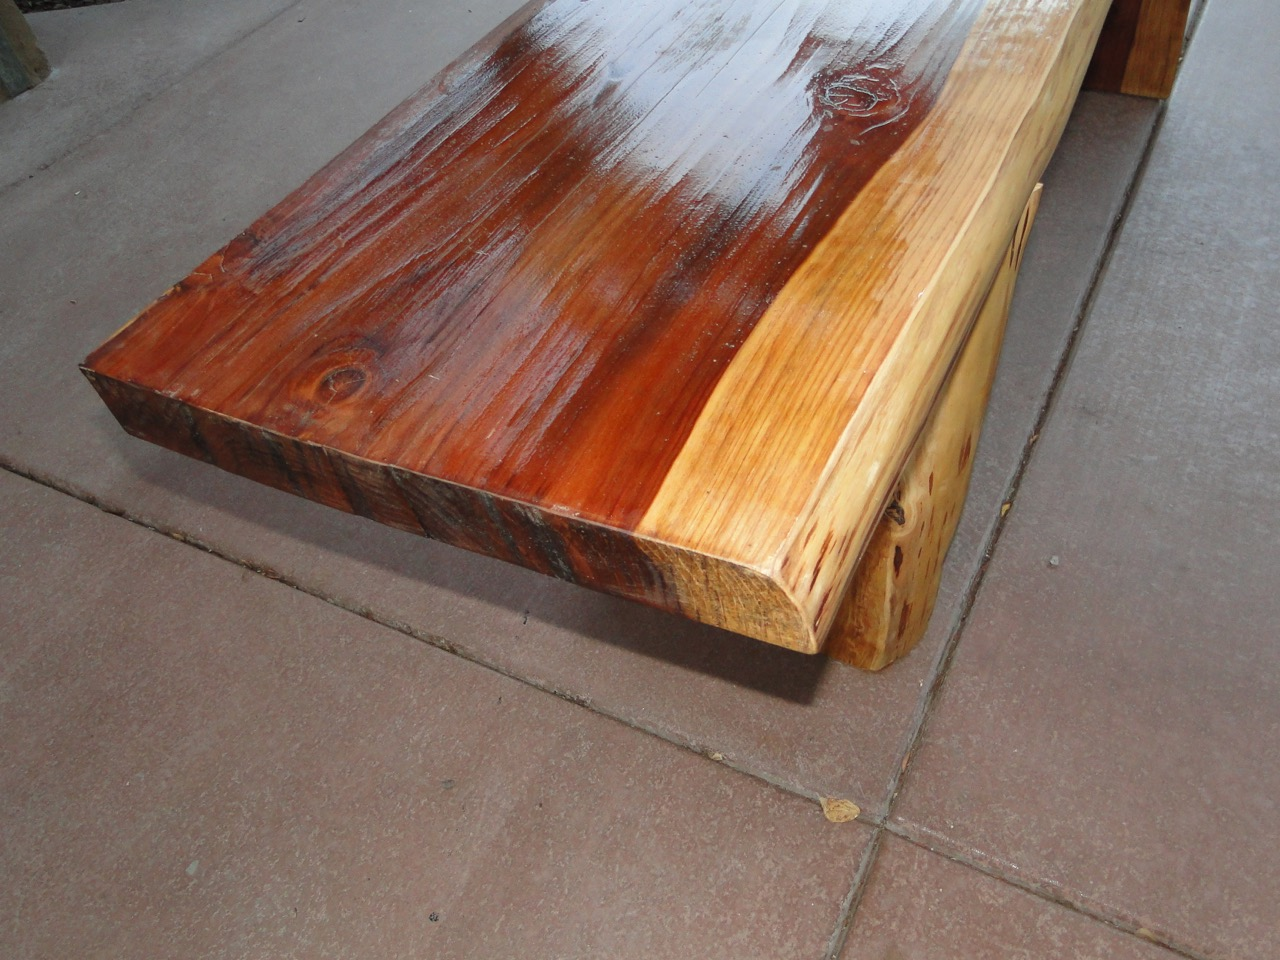 A1 Stump Reclaimed Furniture - 119